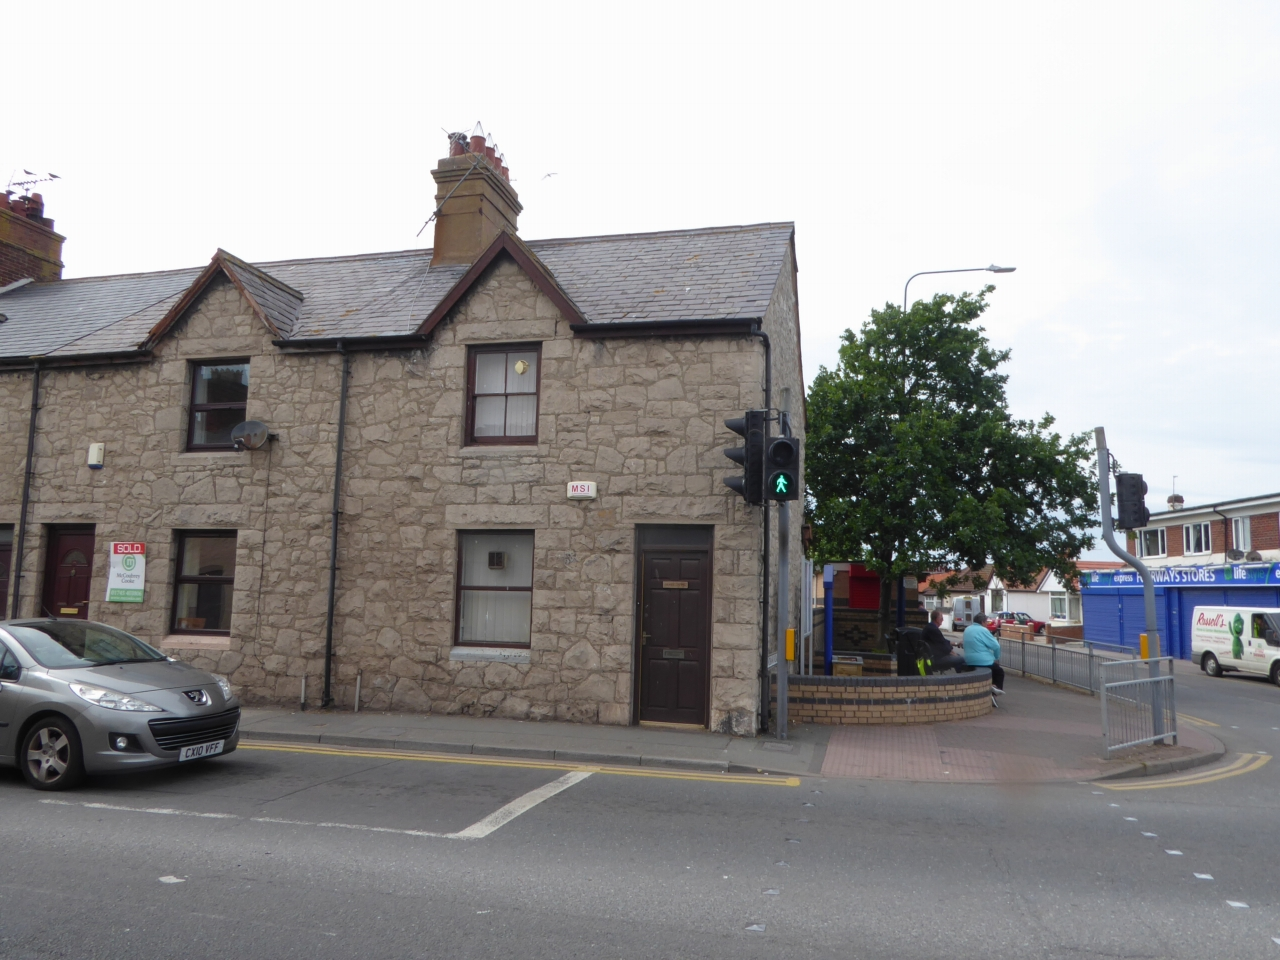 Commercial Property SSTC in Abergele - Photograph 1